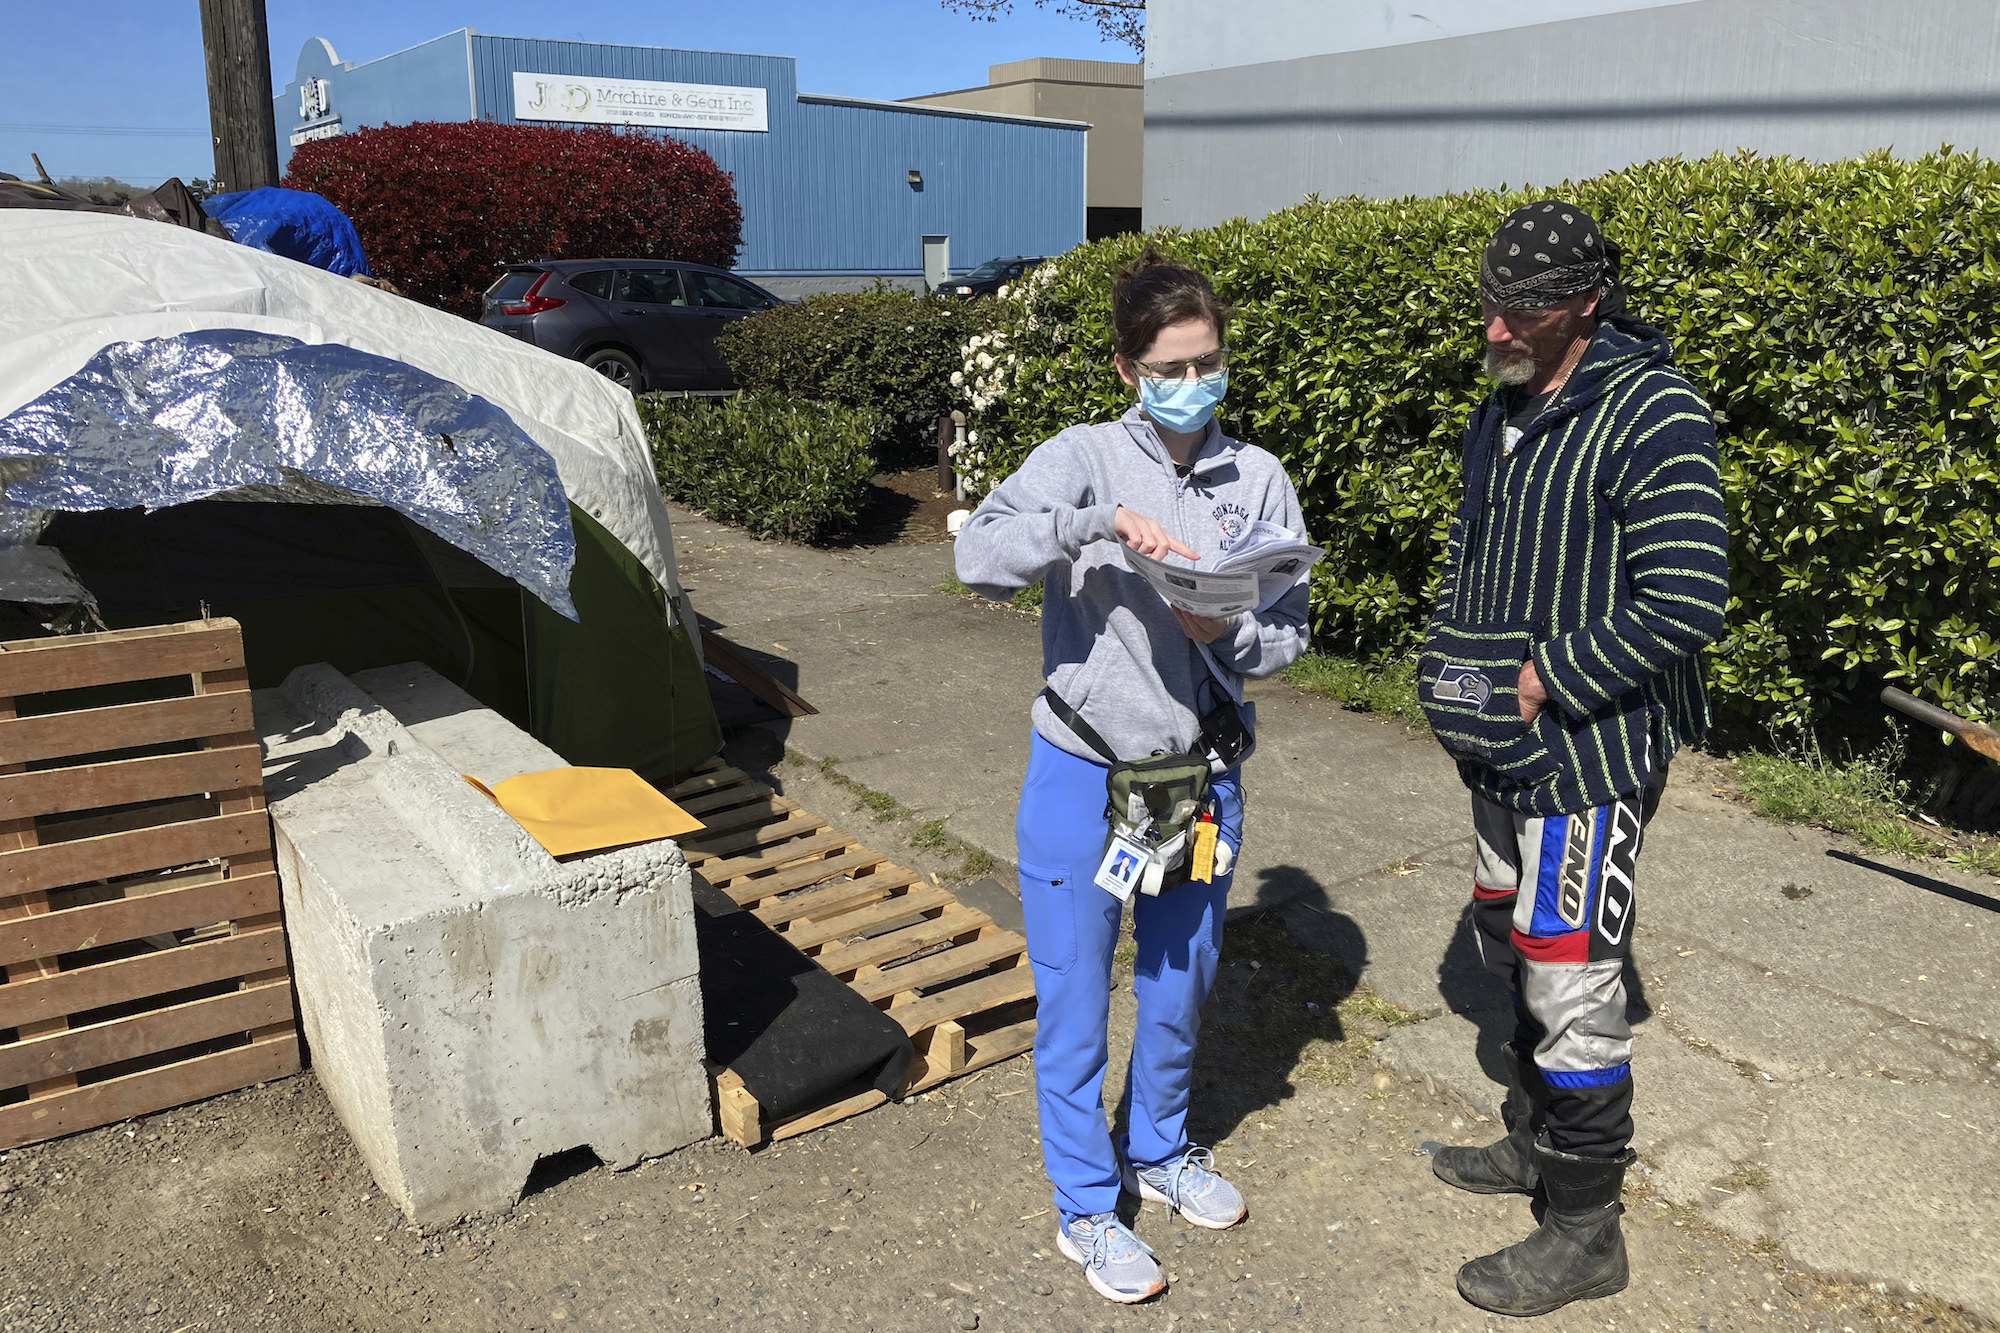 A woman in blue medical scrubs points to a piece of paper with COVID vaccine information while a man who lives at an encampment for people who are homeless looks on.